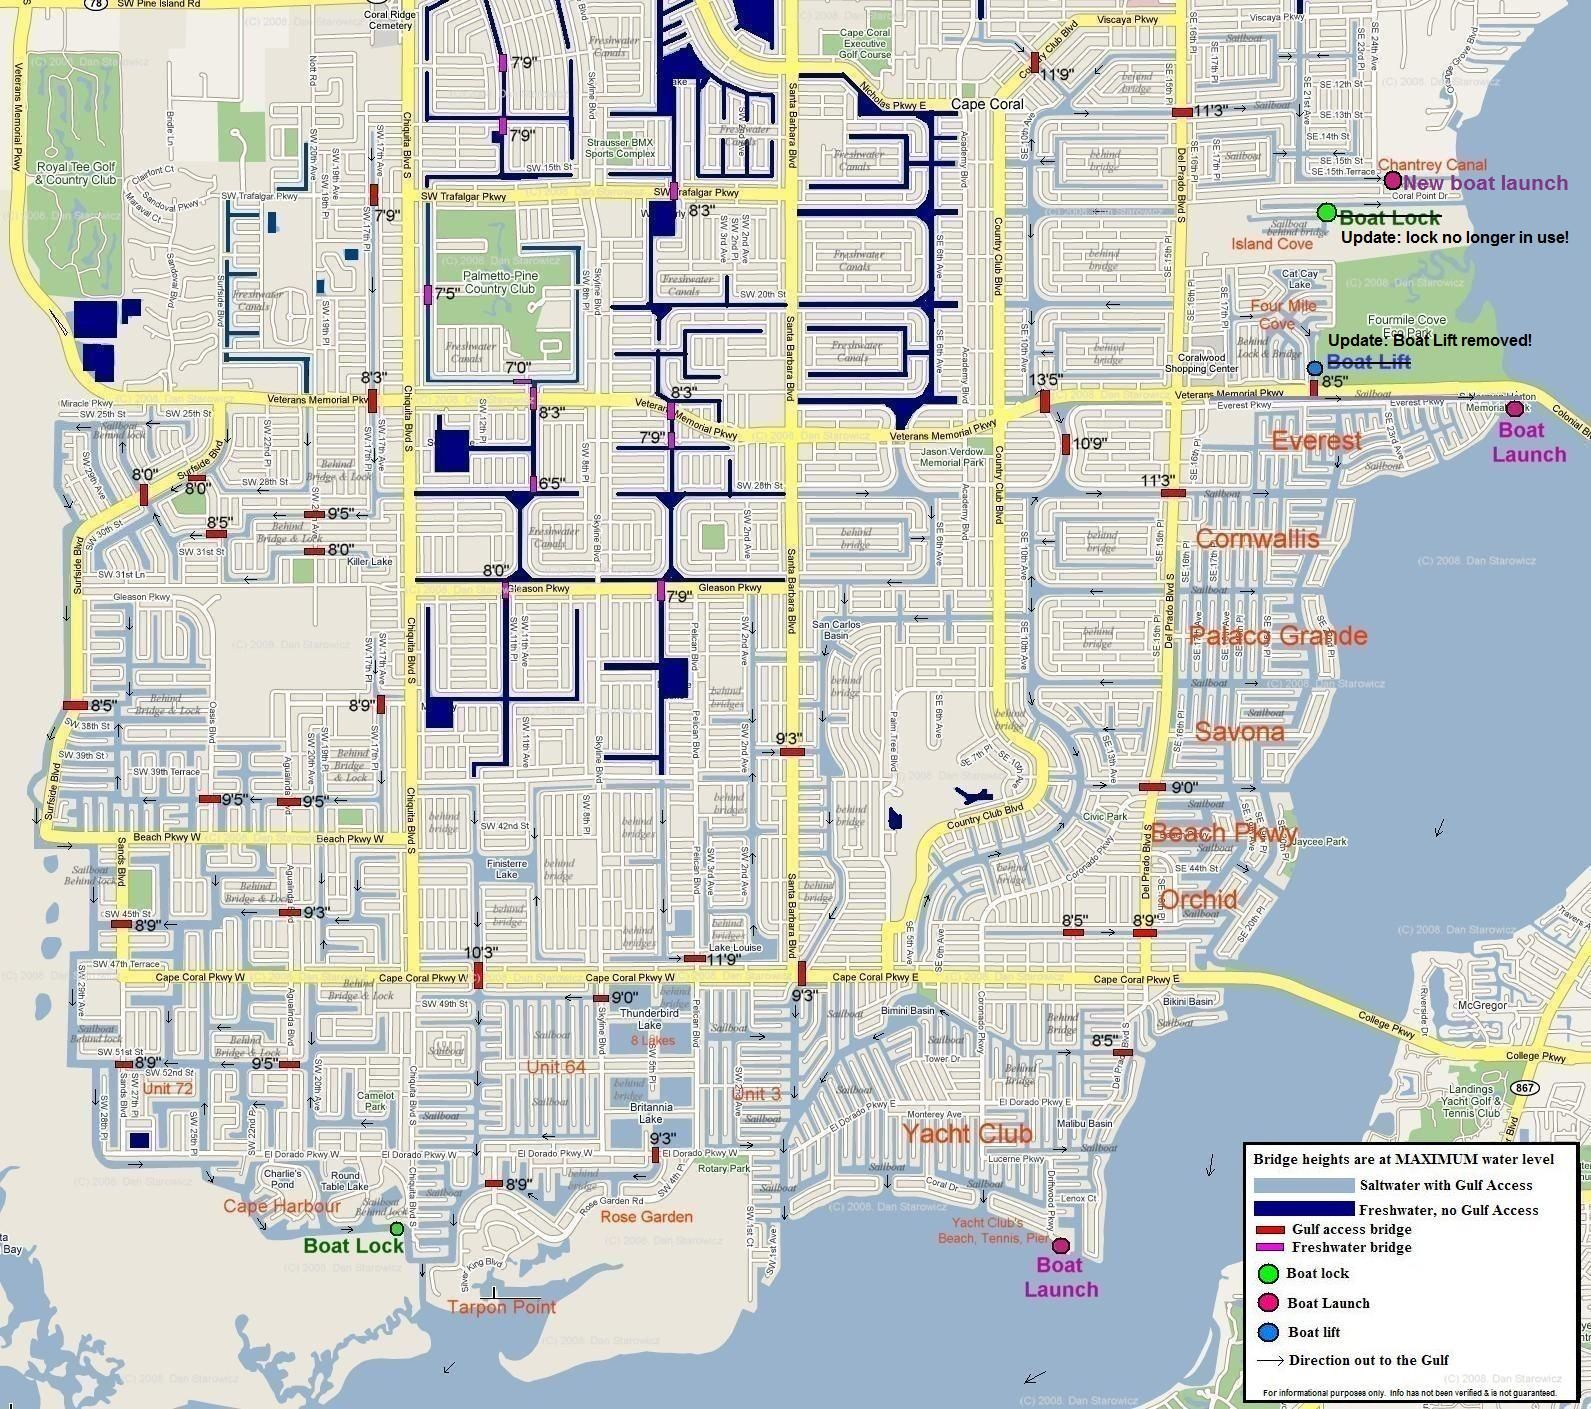 Map Cape Coral Florida Map of Cape Coral Florida | Cape coral florida, Cape coral